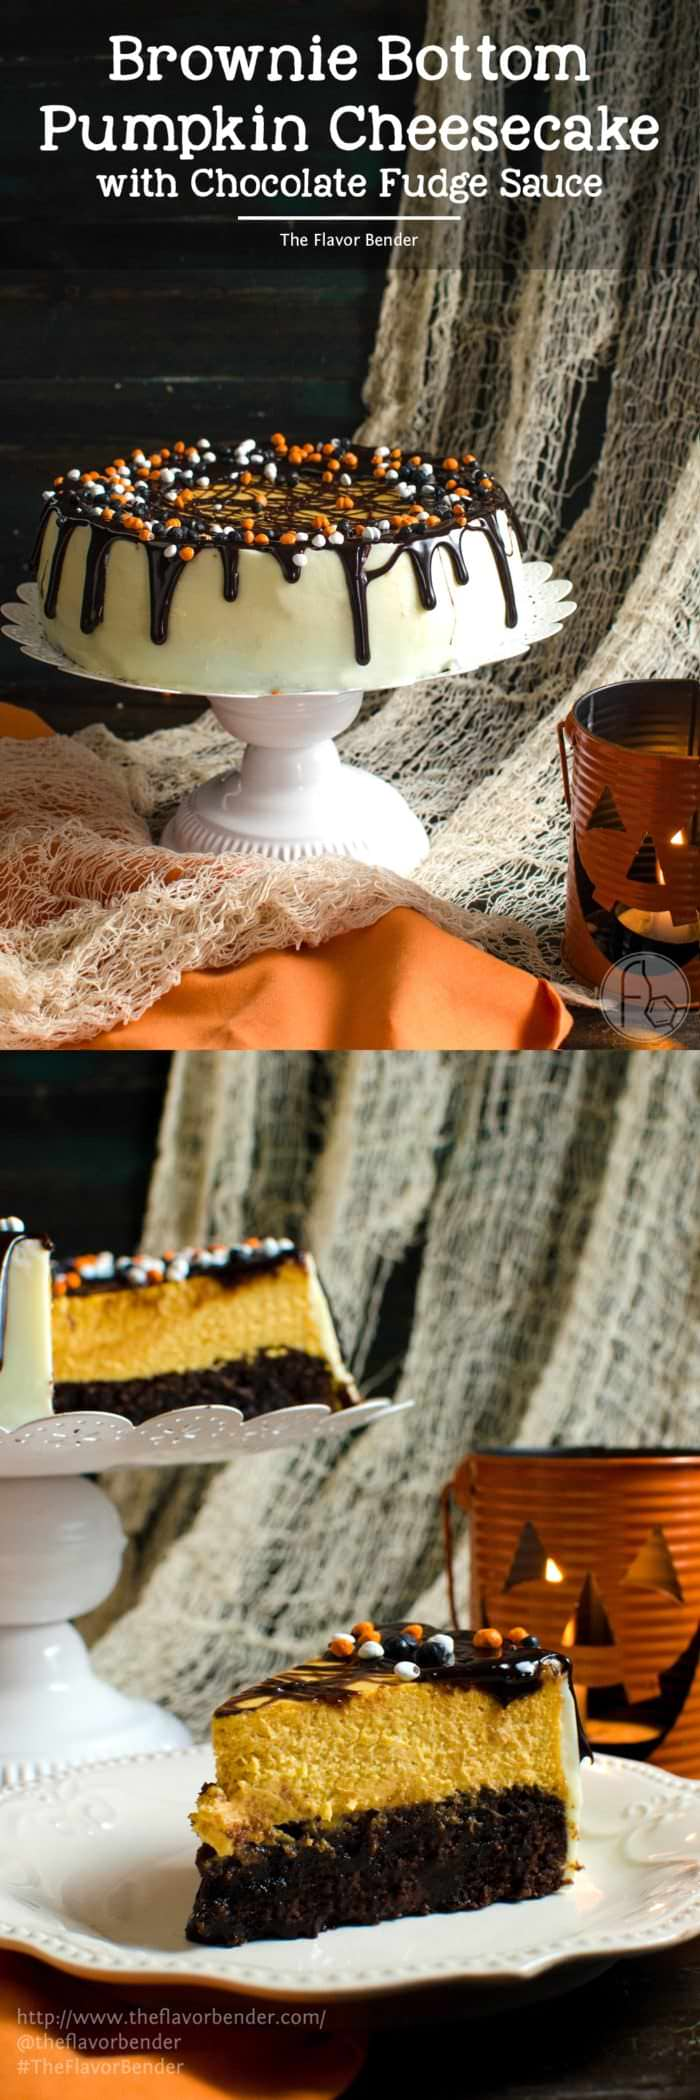 Brownie Bottom Pumpkin Cheesecake With Chocolate Fudge Sauce - A delicious combination of Fudgy brownies and creamy Pumpkin cheesecake in one dessert! Dress it up for Halloween or keep it simple to celebrate Thanksgiving or Fall. A great twist on Brownie Bottom Cheesecake with Fall flavors and Halloween cheer! #BakeFallFavorites @Target @pillsbury @TheFlavorBender